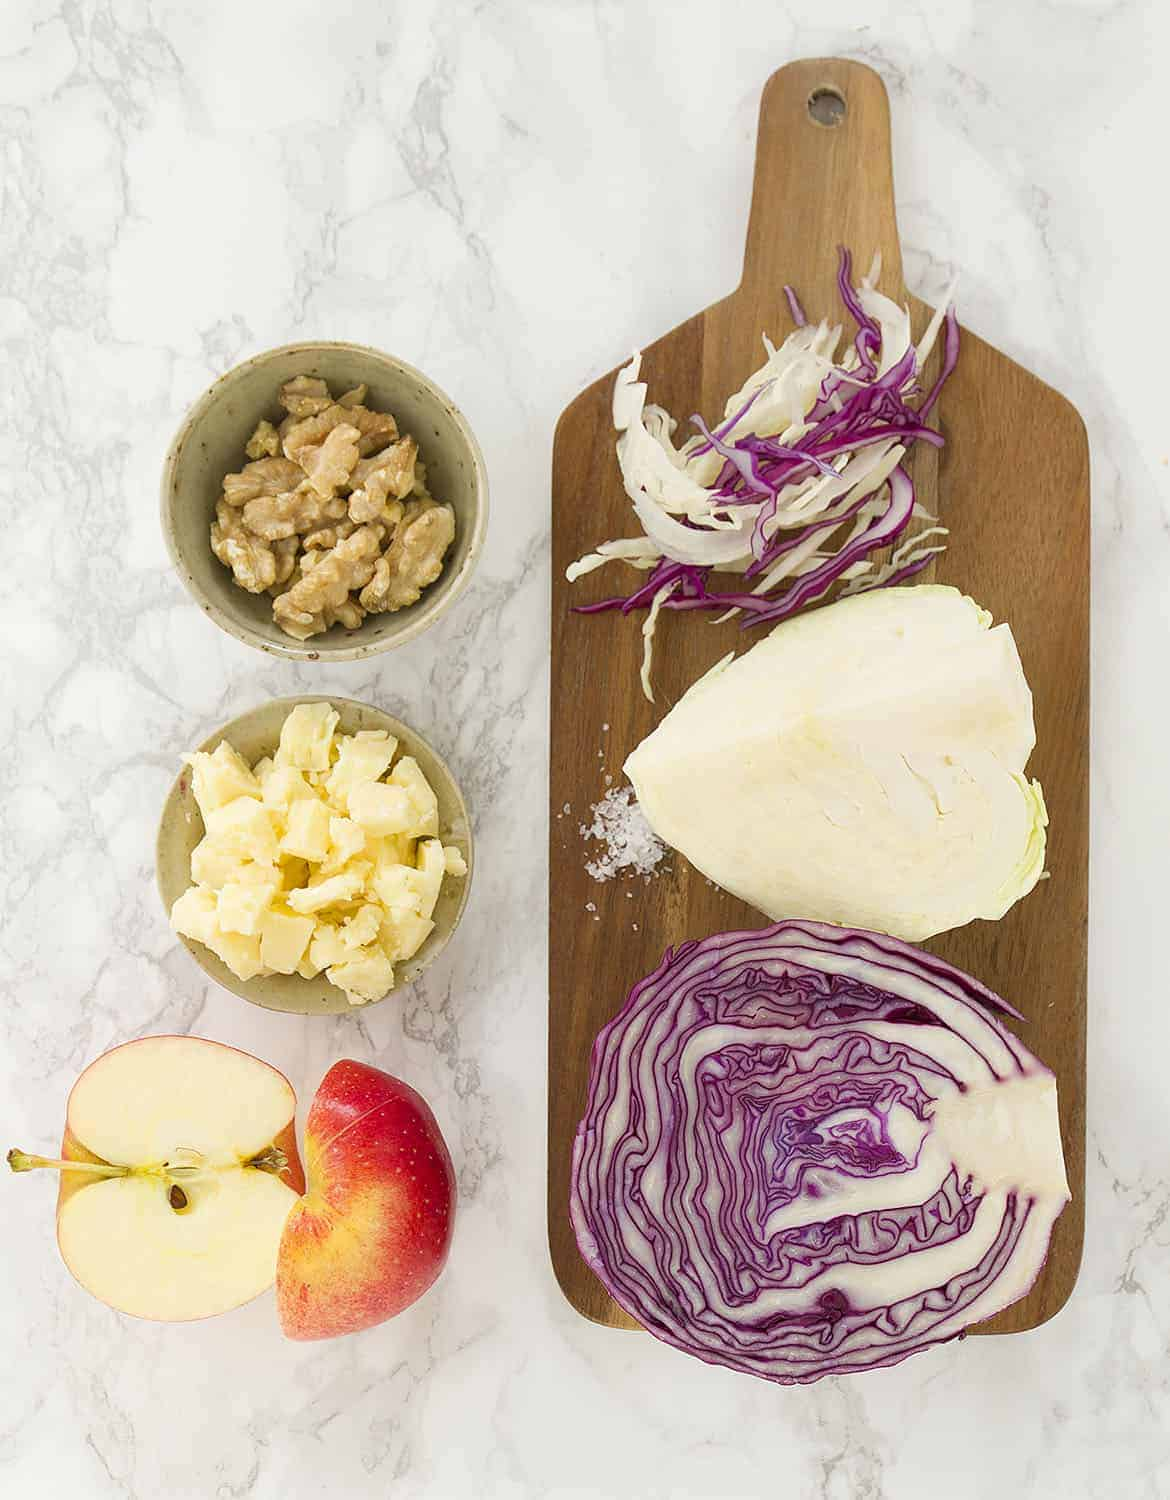 The ingredients for this cabbage salad are arranged over a chopping board and a white table.